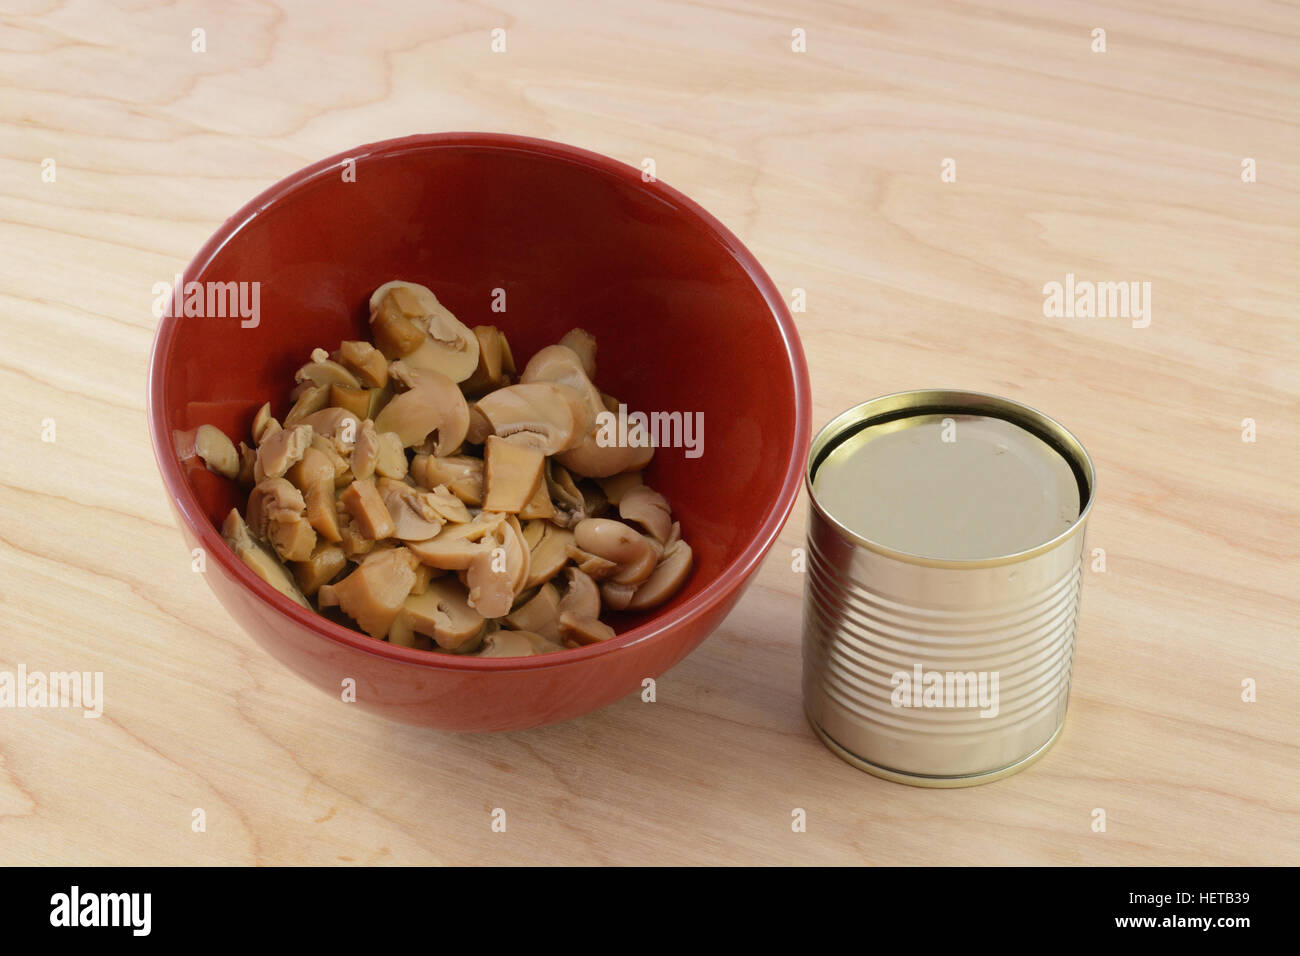 Canned mushrooms in red bowl with can on wooden kitchen table - Stock Image